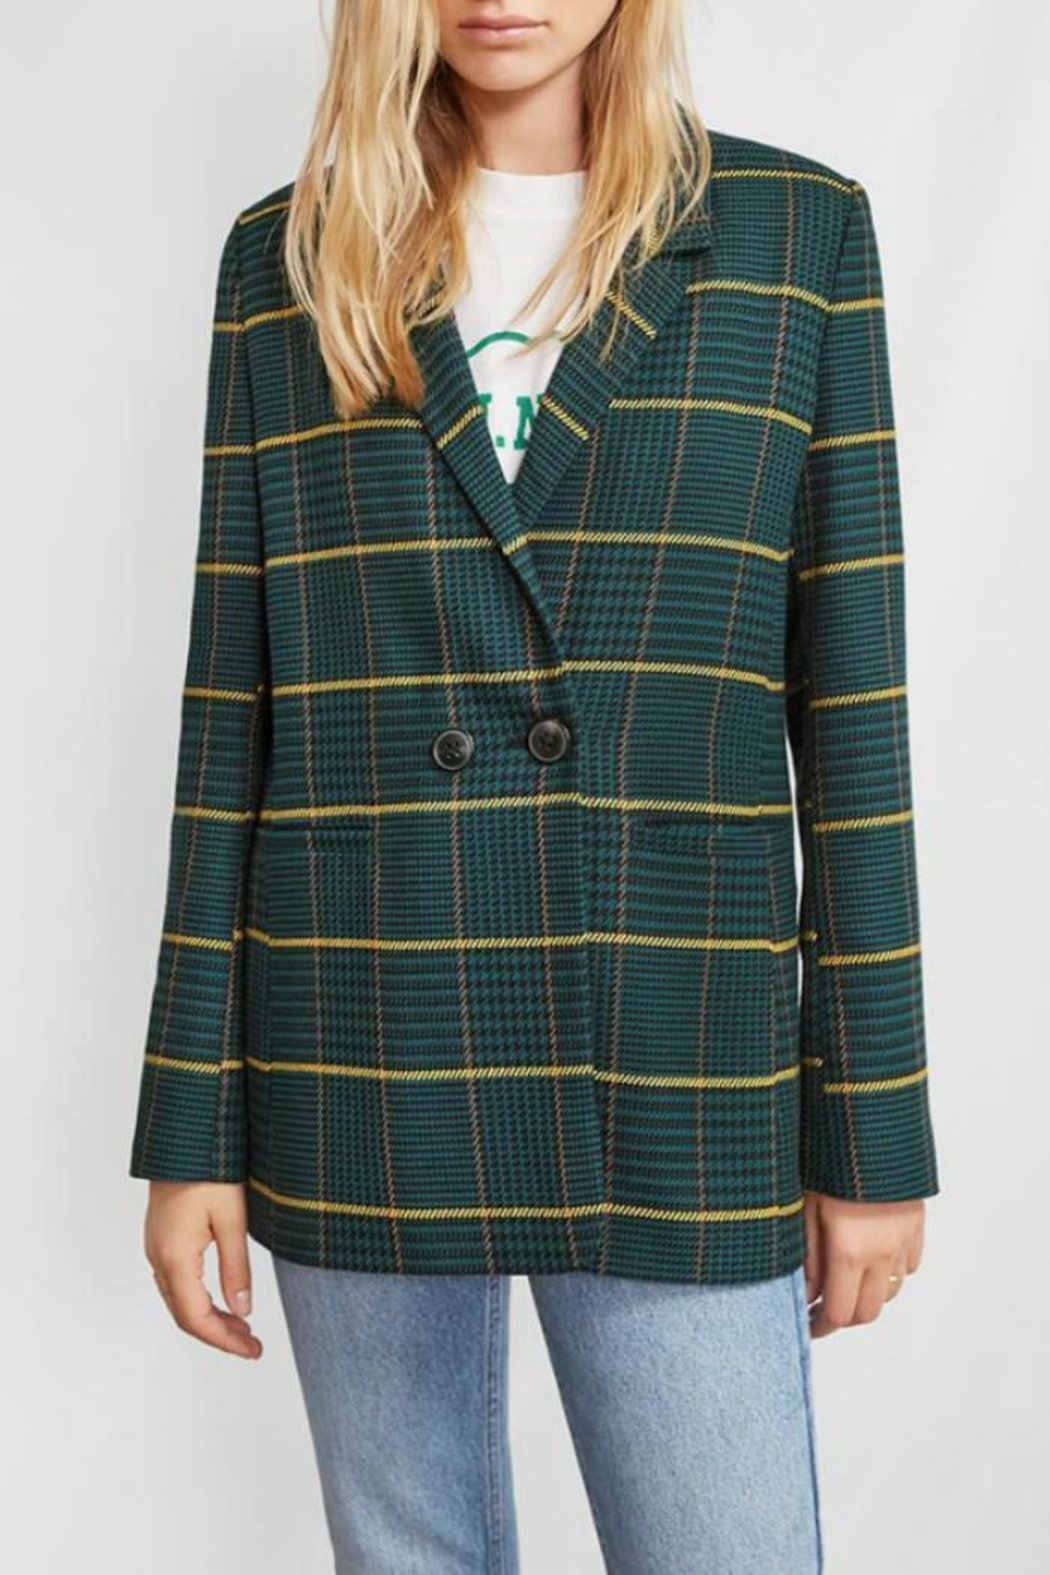 b873898ad8 Anine Bing Madeleine Blazer Plaid from Canada by Era Style Loft ...